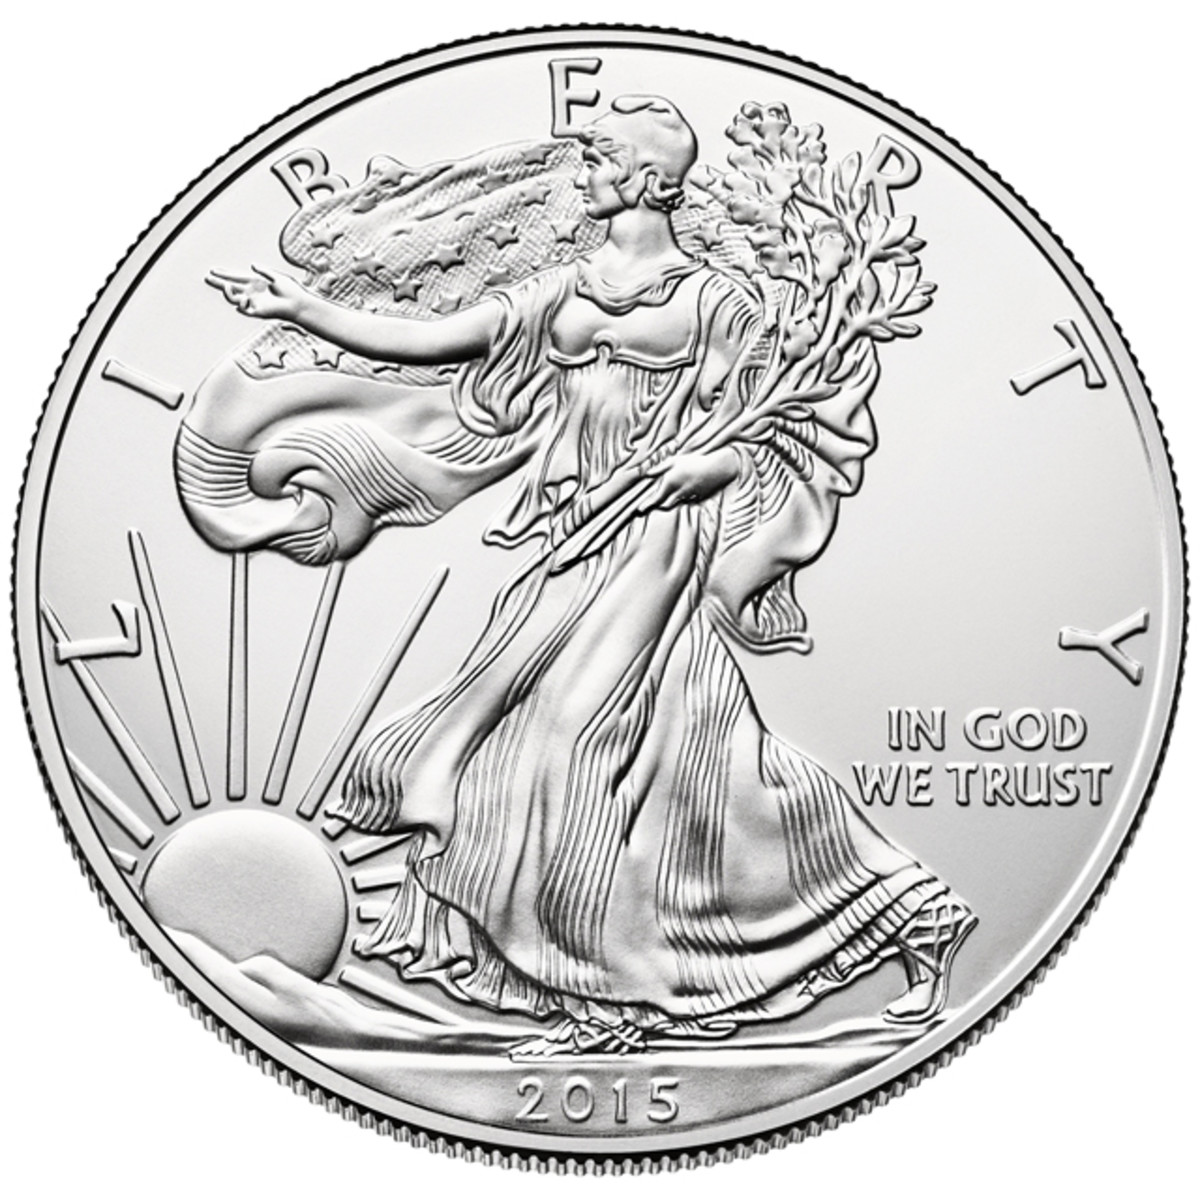 What's the real reason behind the drop in the silver price?